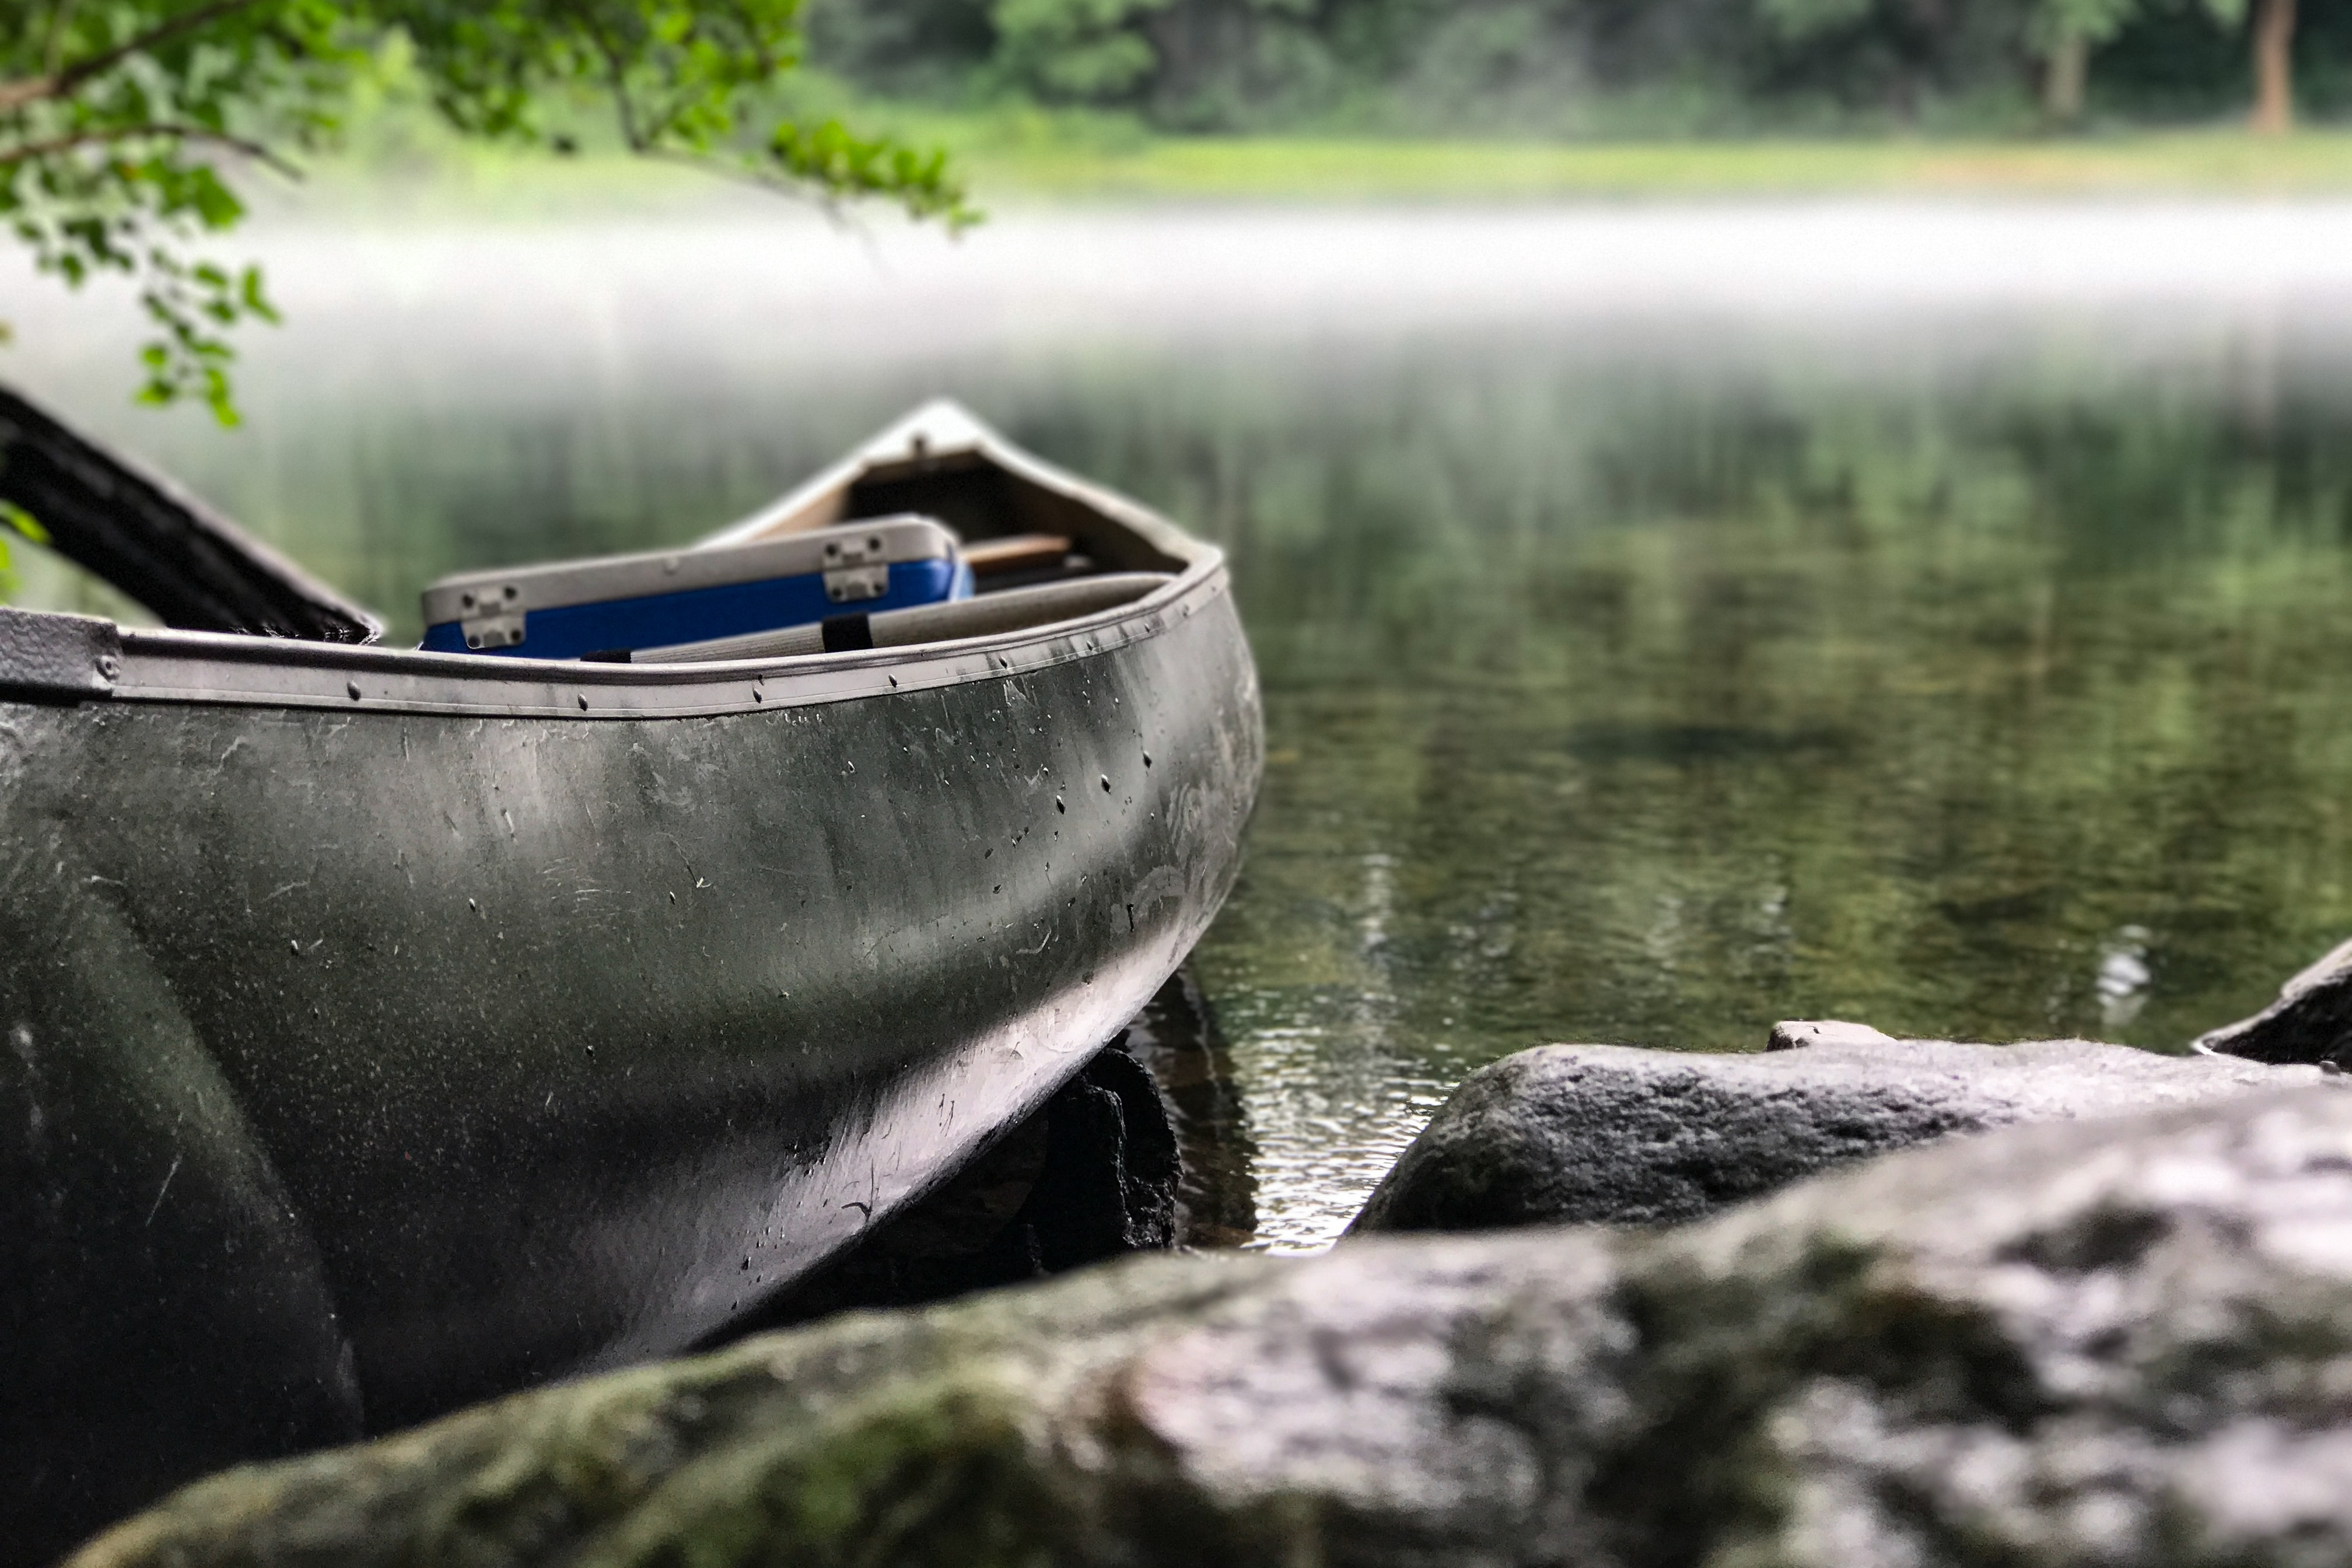 Row boat with camping cooler